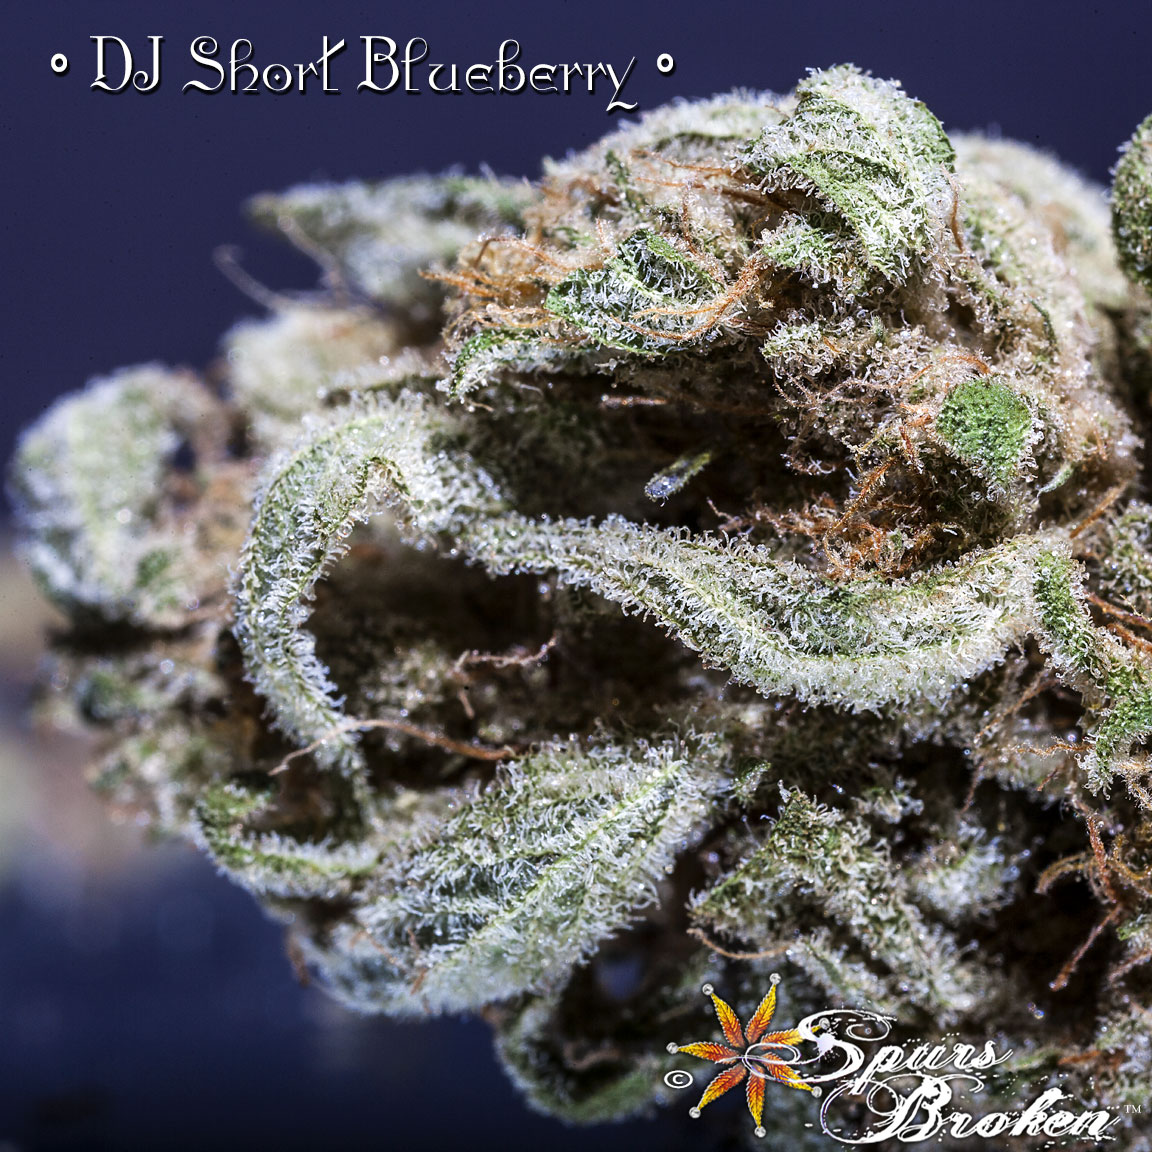 DJ Short Blueberry - Cannabis Macro Photography by Spurs Broken (Robert R. Sanders)